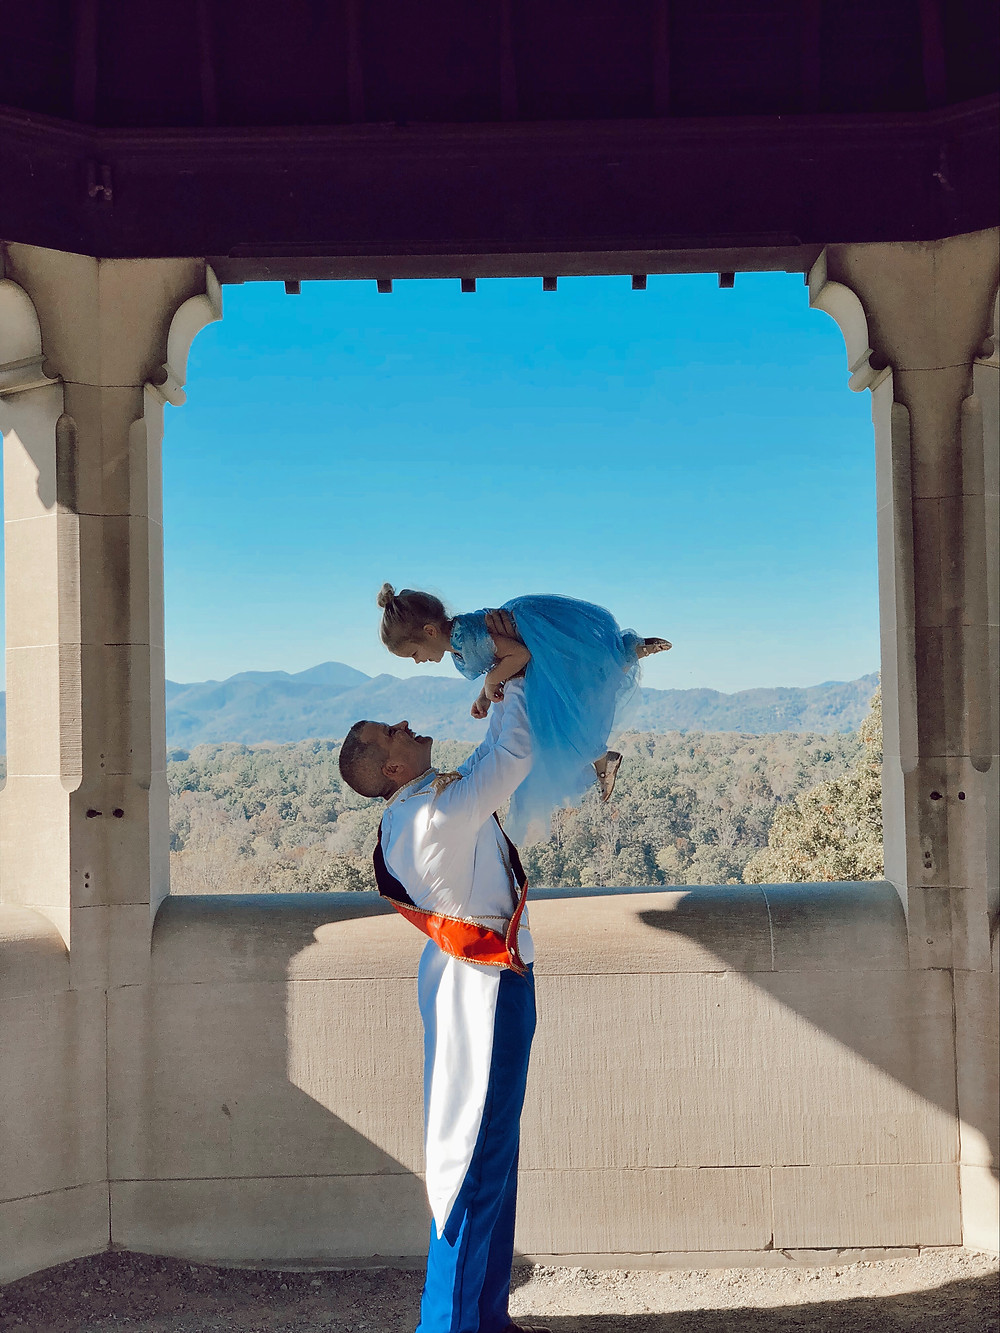 A dad dressed as Prince Charming lifts his daughter in her Cinderella dress up in the air.